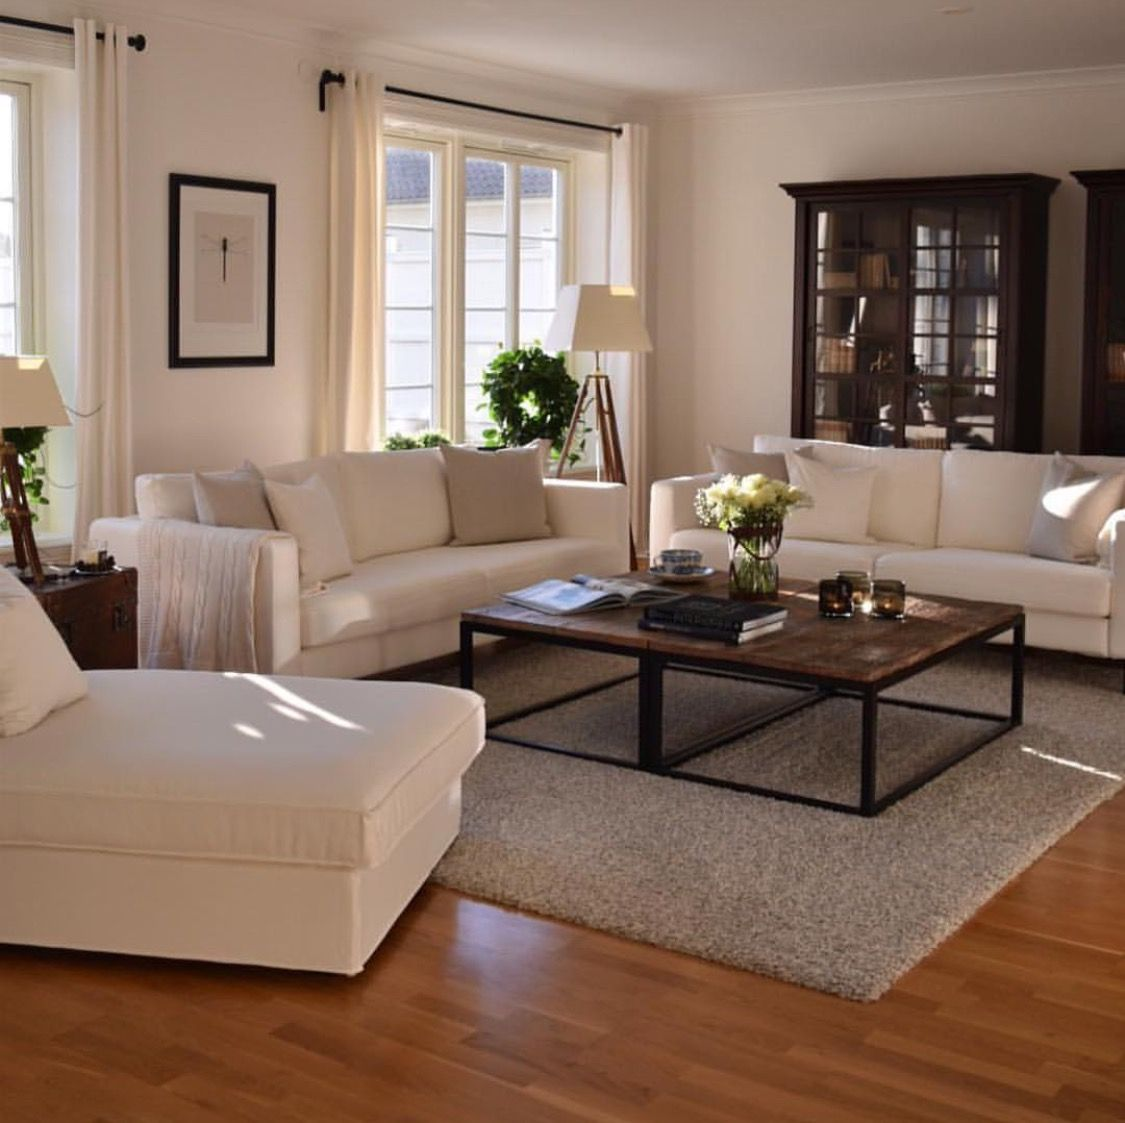 Living Room Staging Ideas: Pin By Sherri Price Thomas On Staging & Decoration Ideas